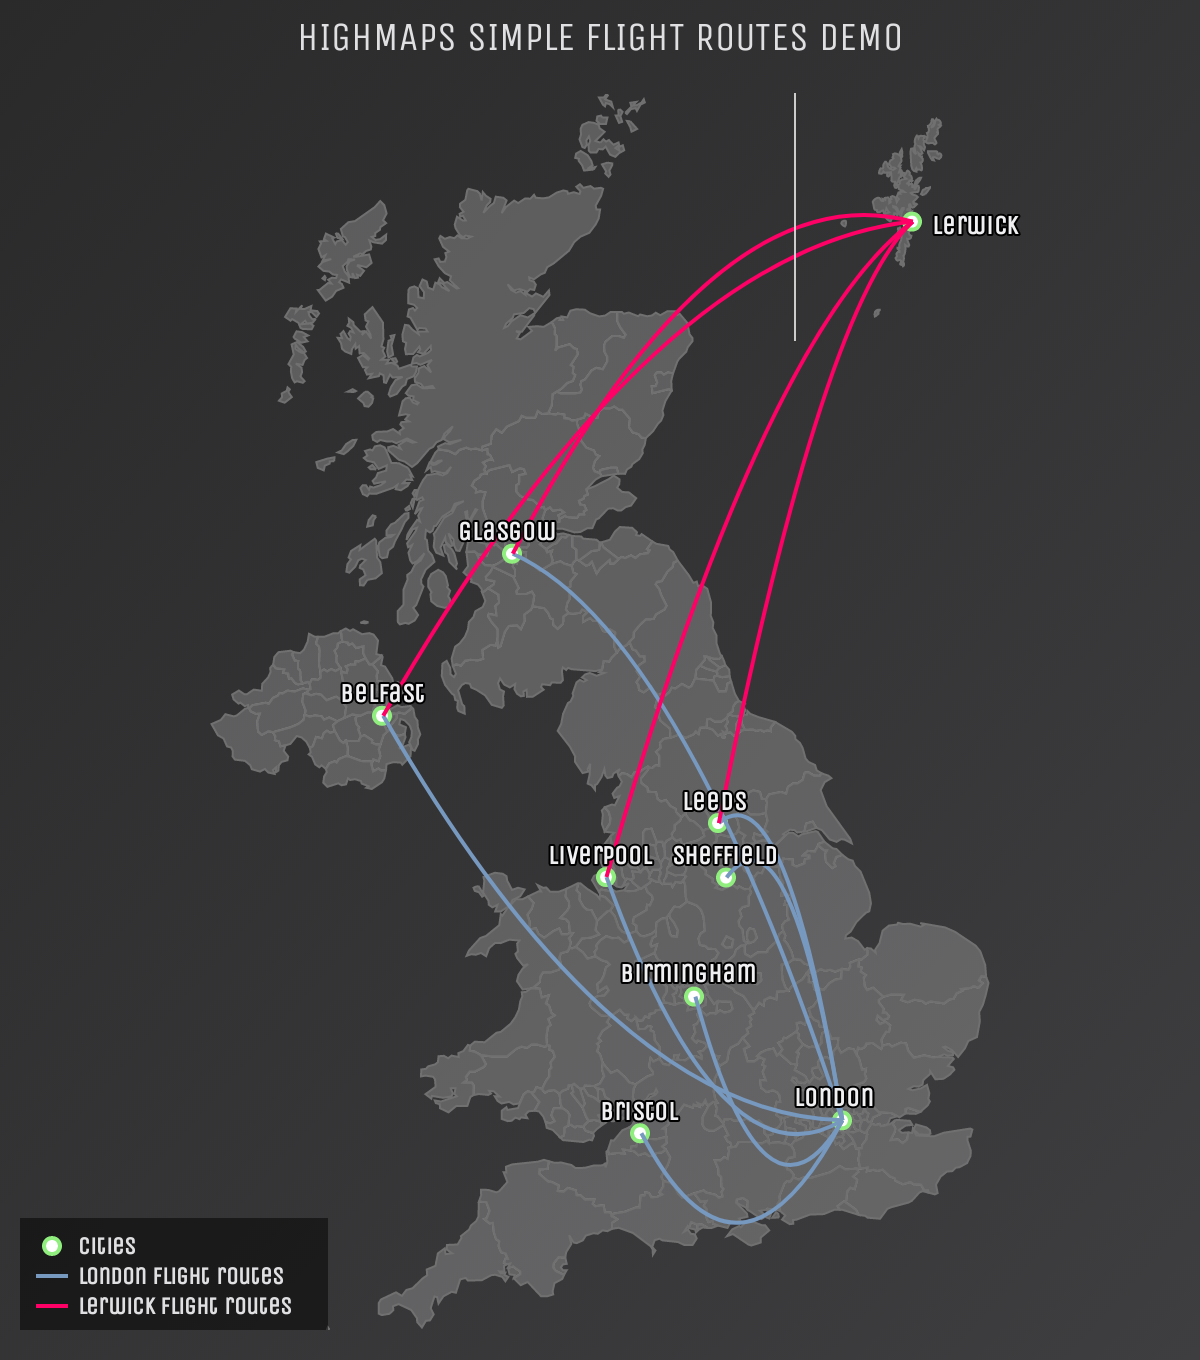 Screenshot of 'Simple flight routes' demo